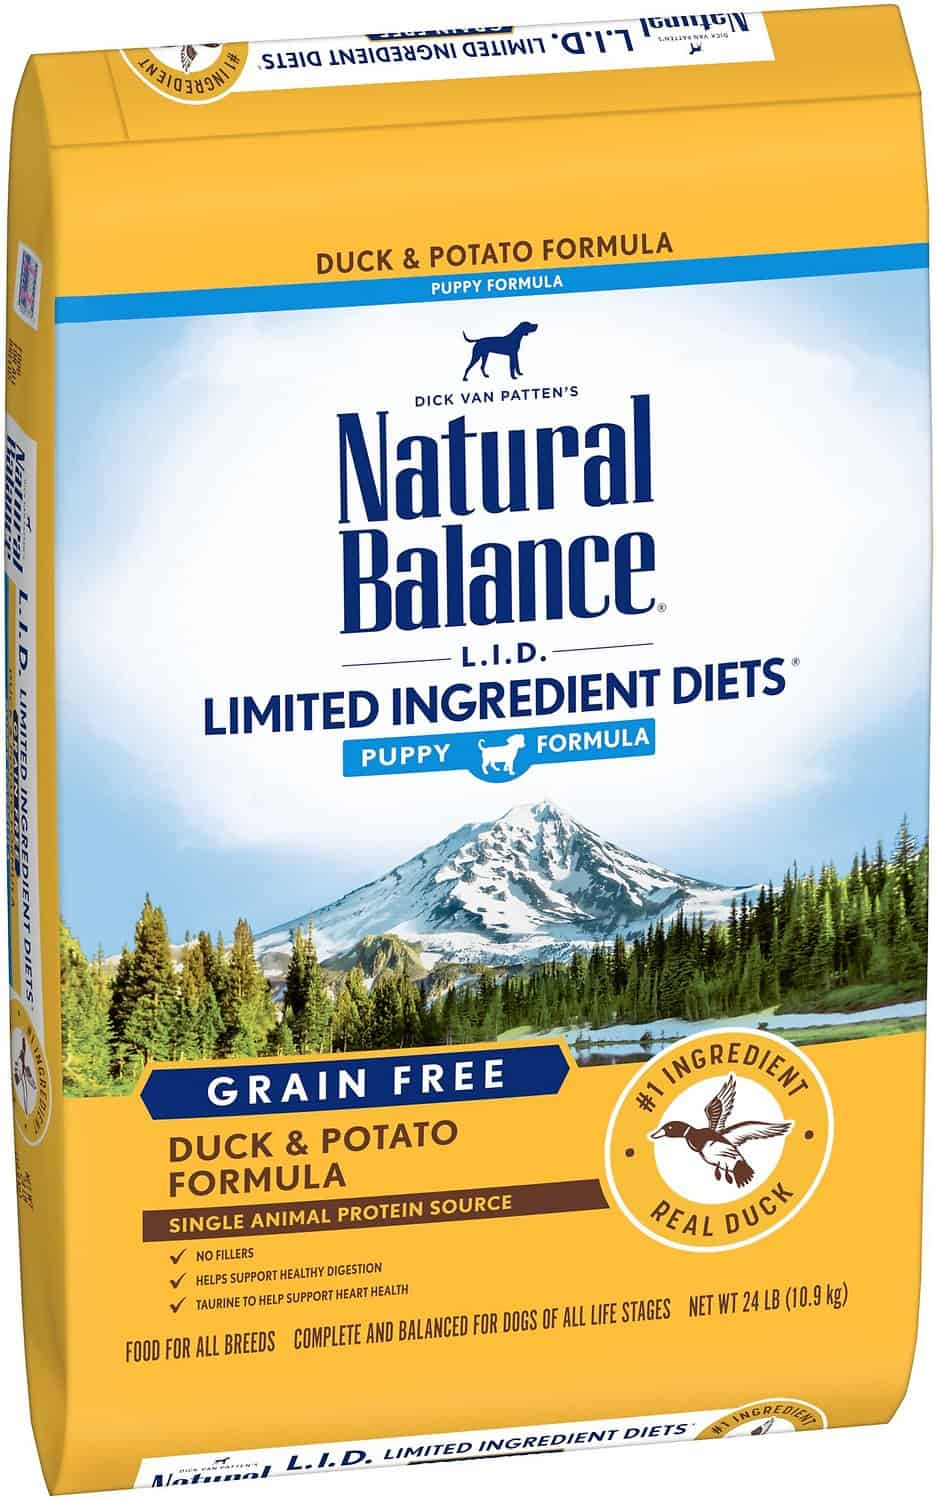 Natural Balance Dog Food Review 2021: Best High Quality Pet Food? 17